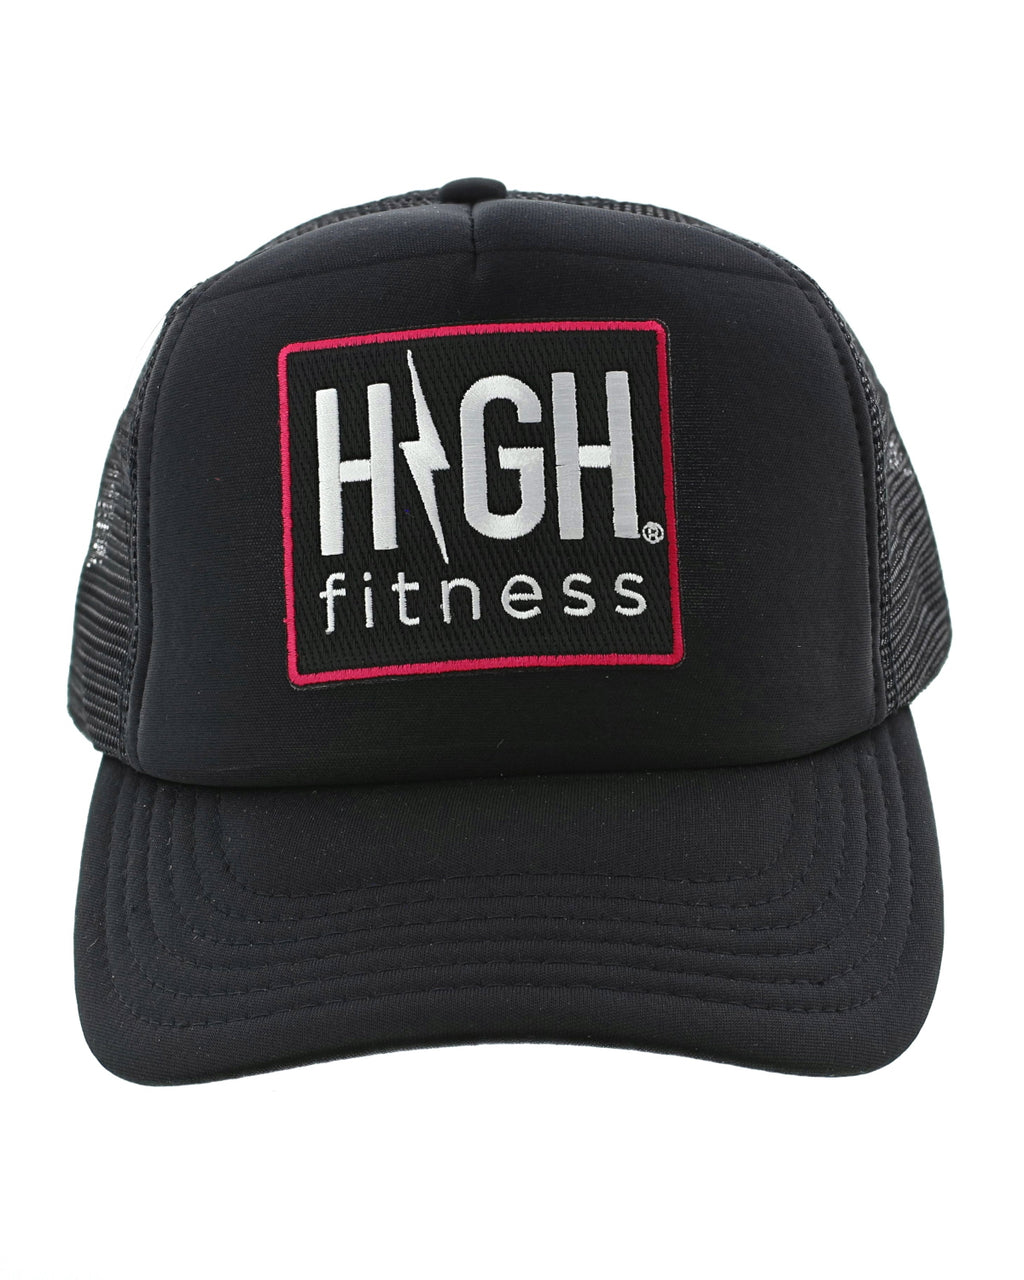 High Fitness Patch Trucker Hat